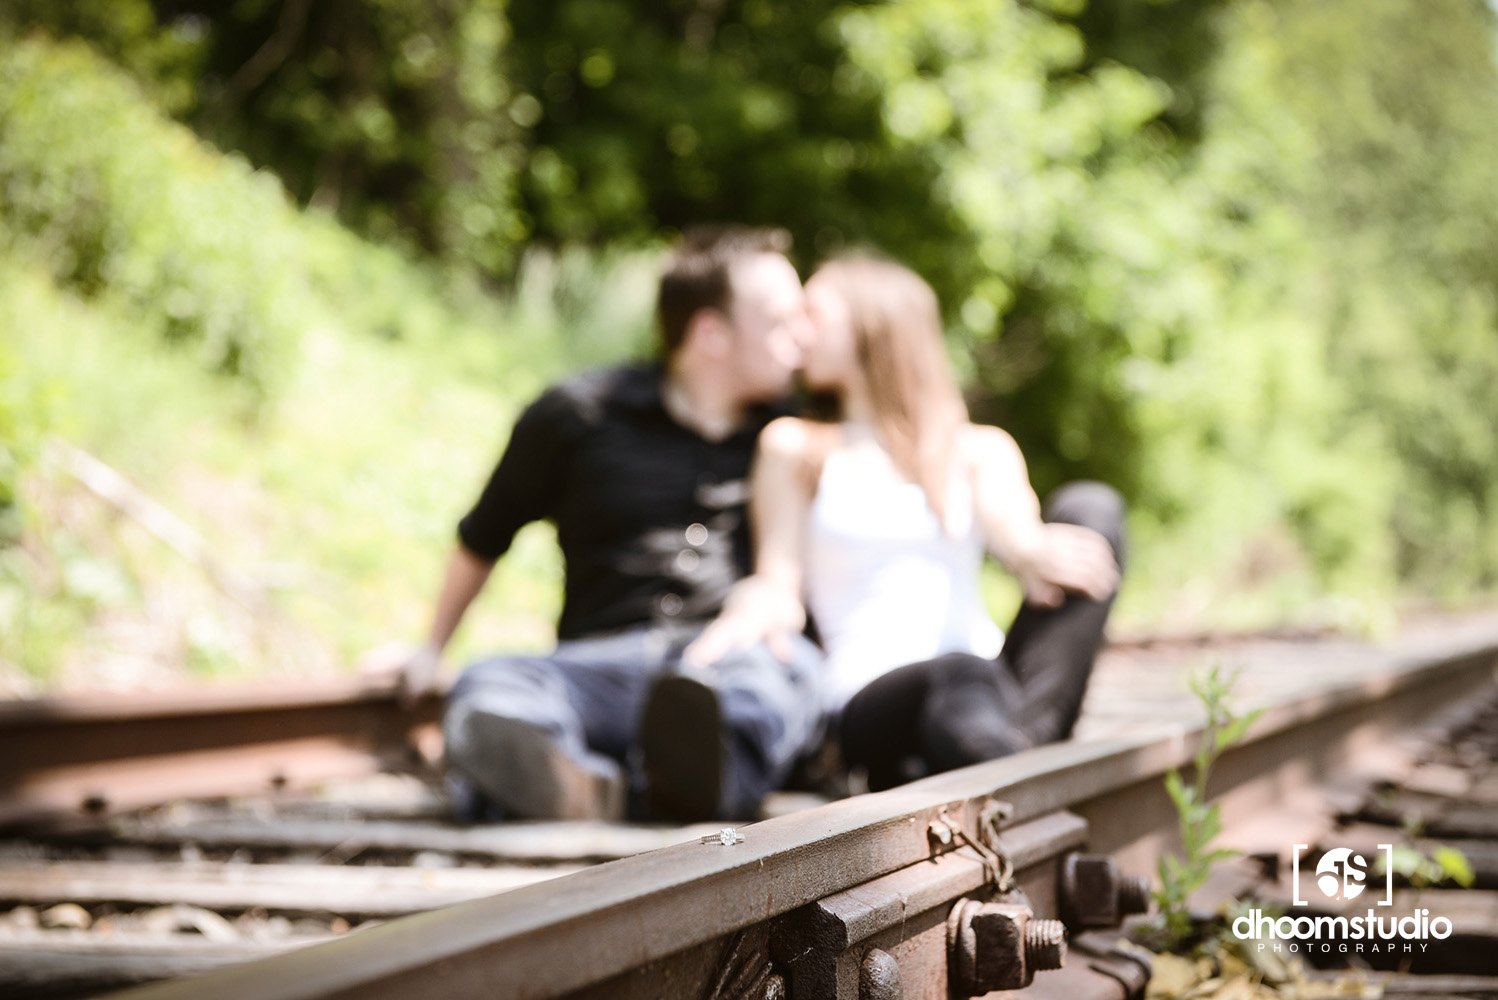 Heather + Sean Engagement Session | Freight Rail, Fishkill, NY. 05.21.13